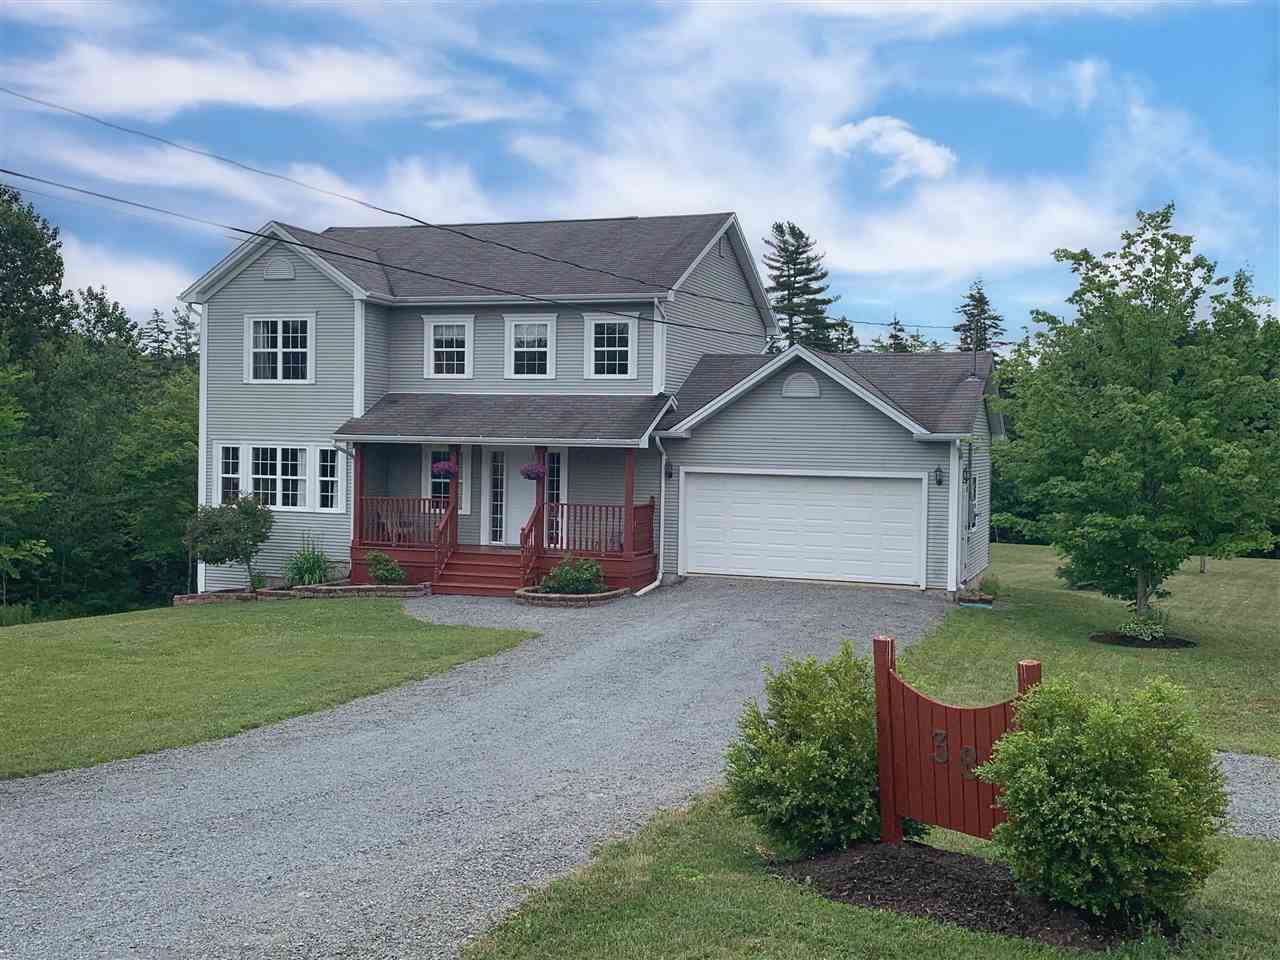 Main Photo: 38 Valerie Court in Windsor Junction: 30-Waverley, Fall River, Oakfield Residential for sale (Halifax-Dartmouth)  : MLS®# 202011734